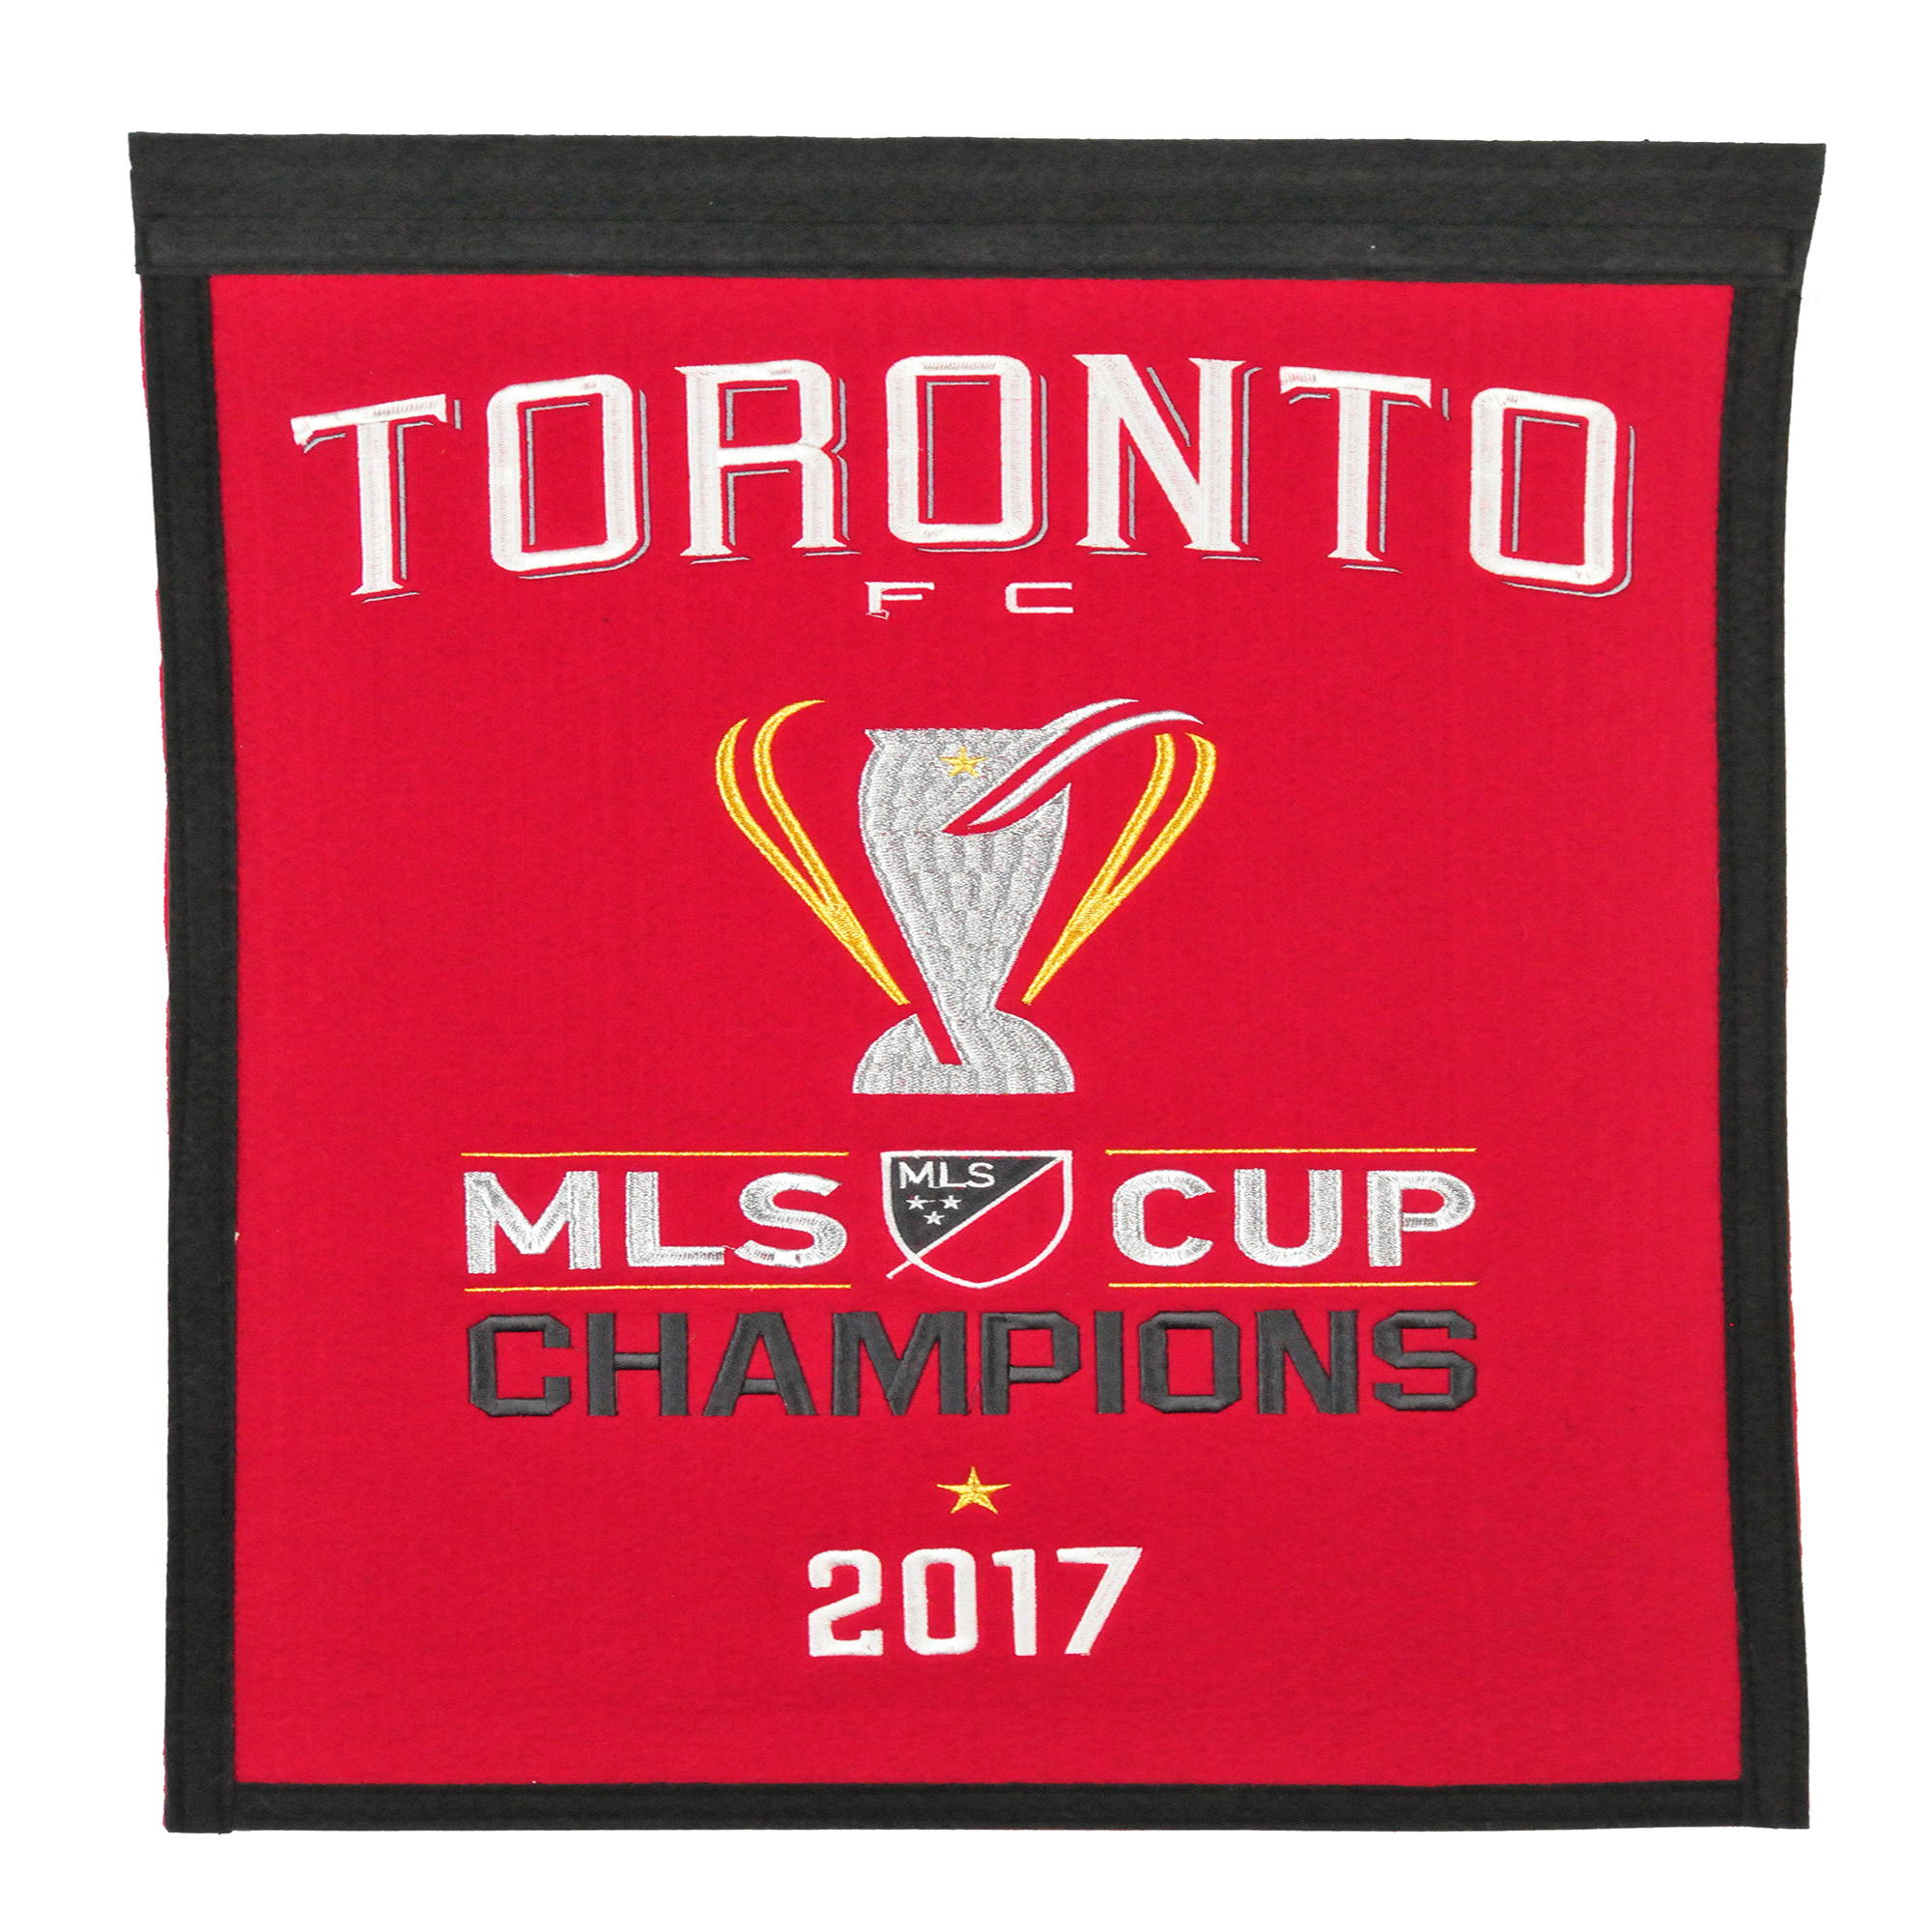 "Toronto FC 2017 MLS Cup Champions 14"" x 22"" Banner - Gray/Red - No Size"